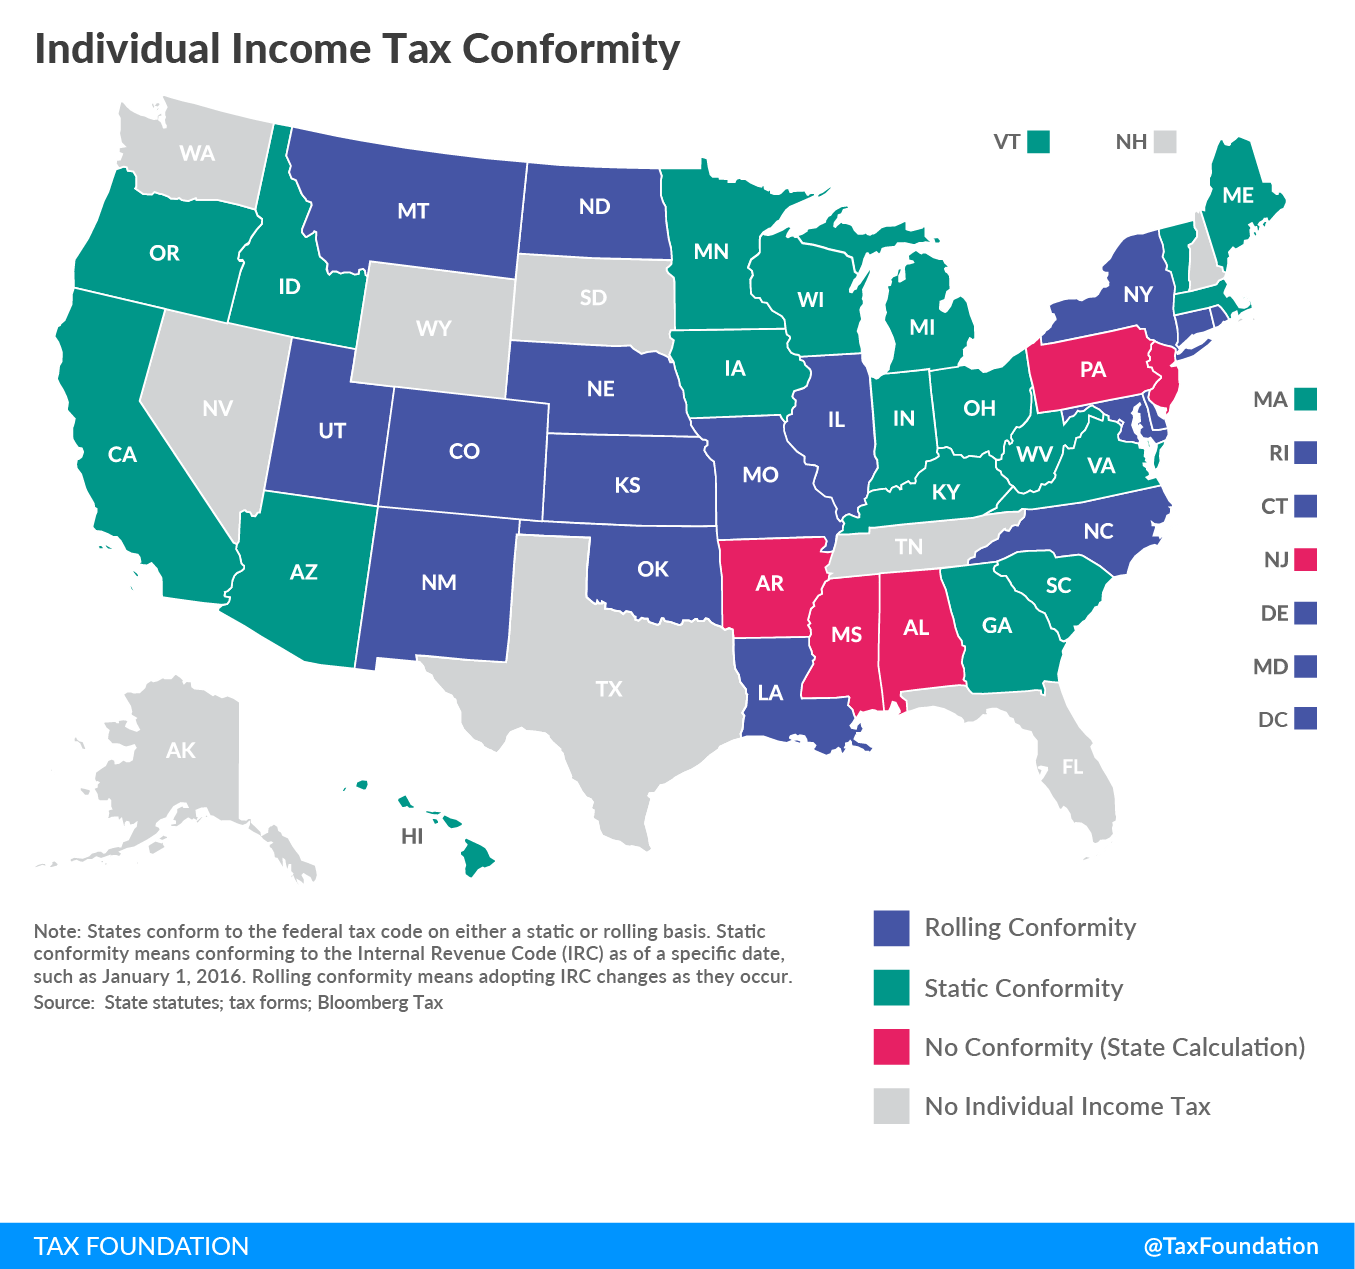 Individual Income Tax Conformity